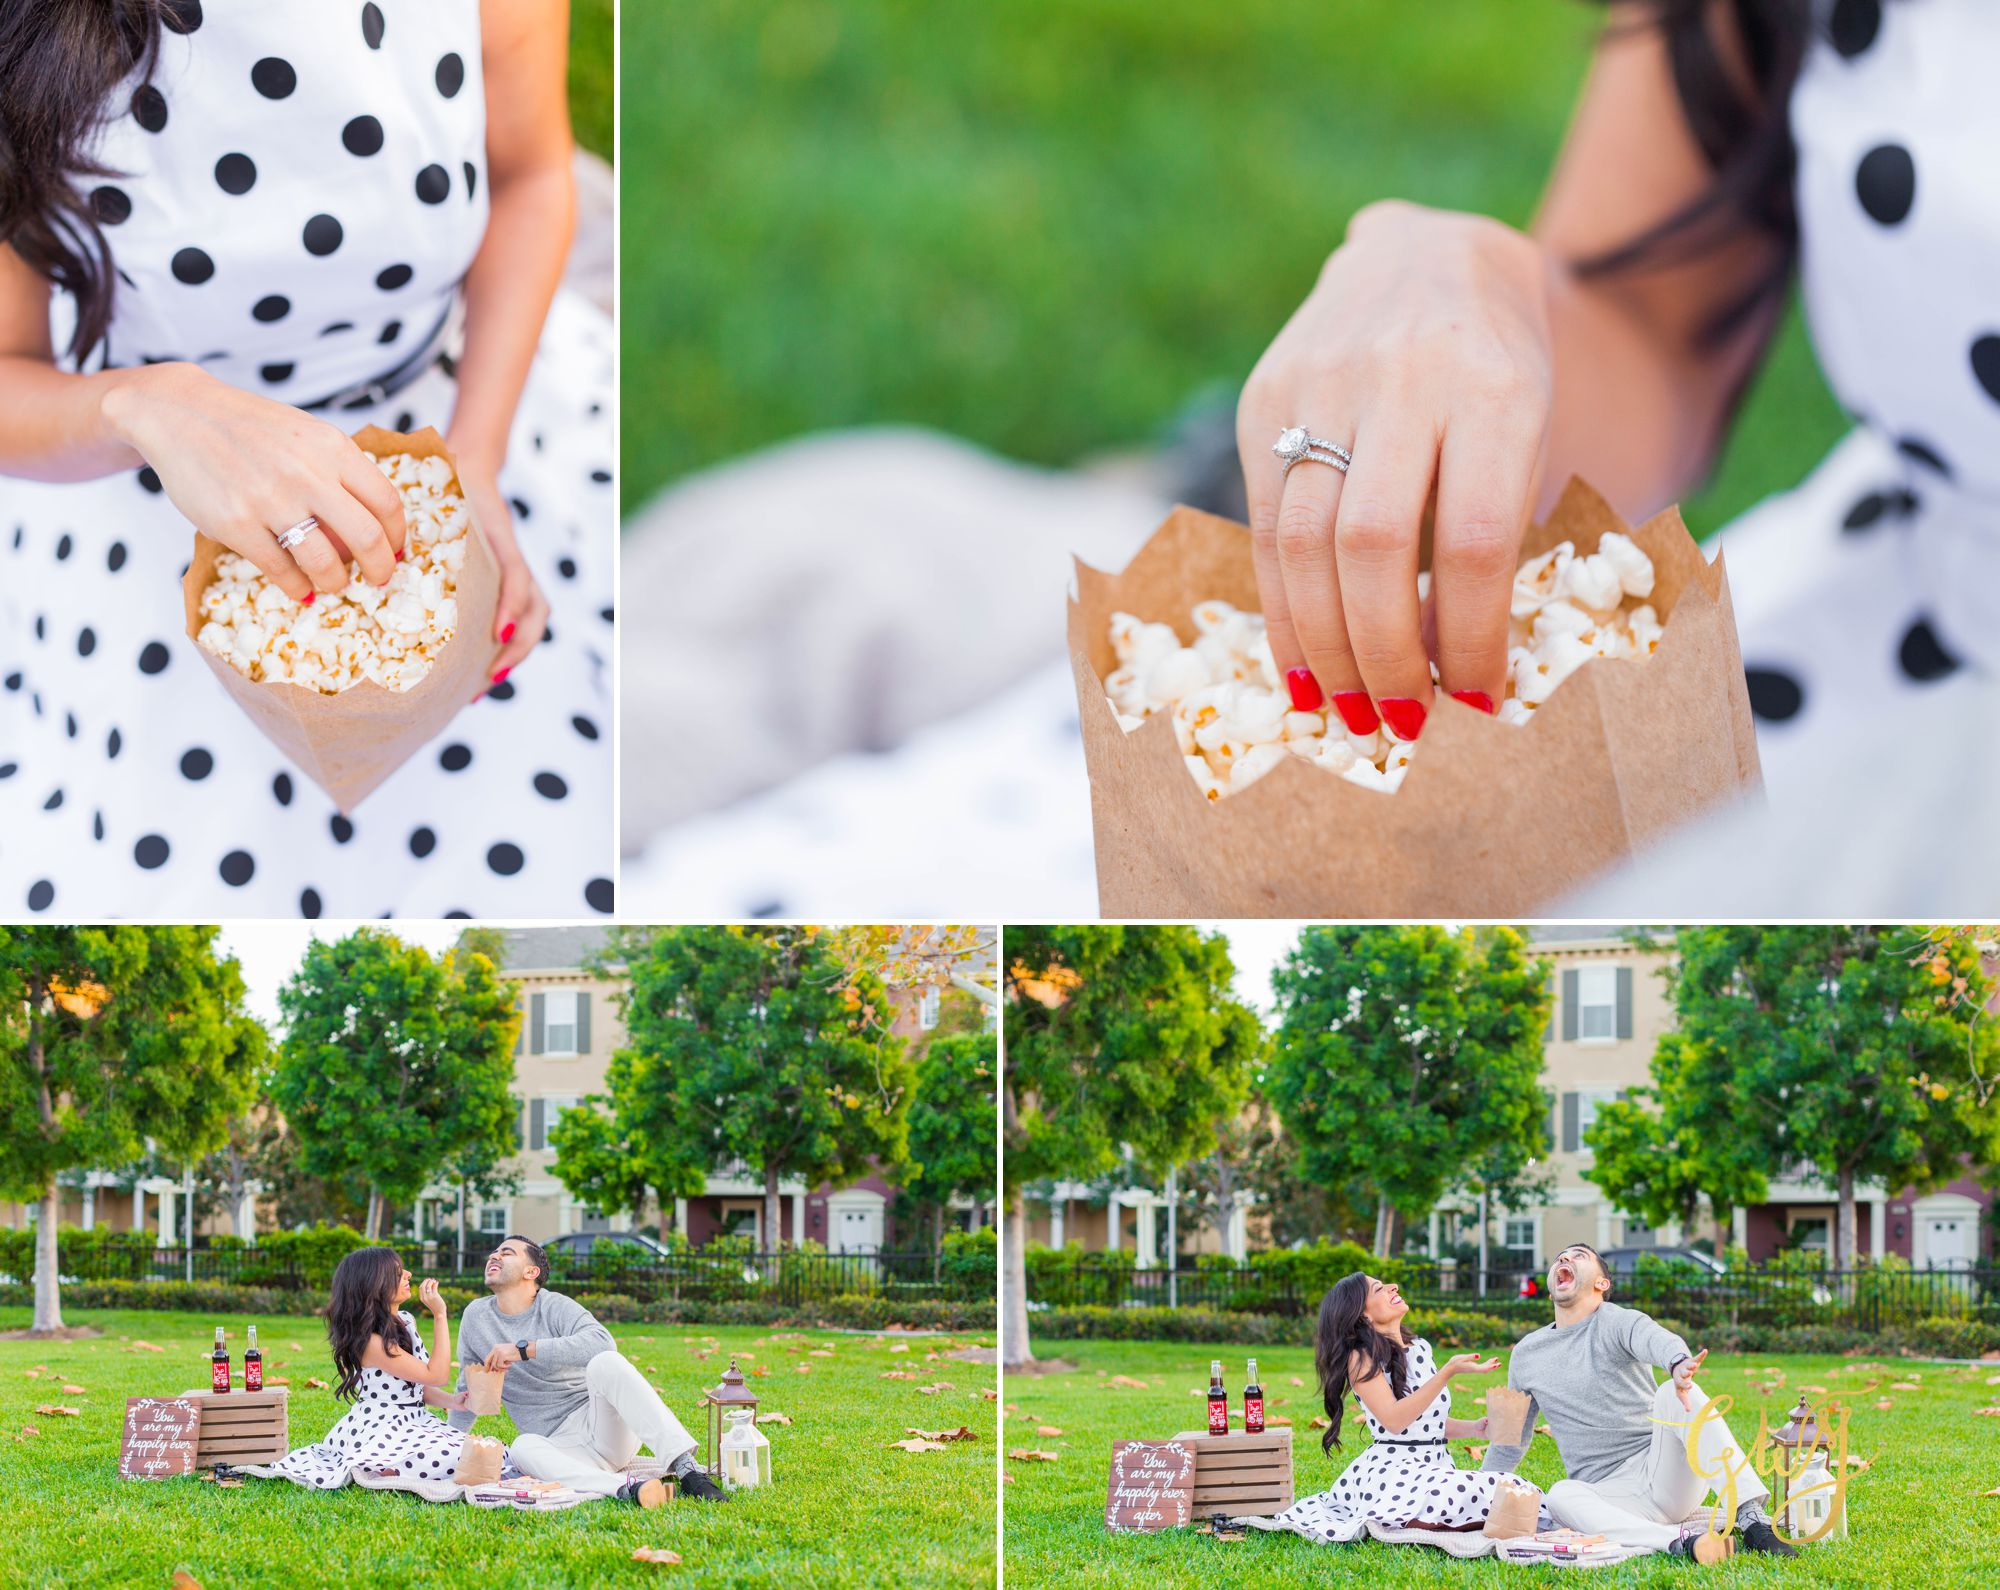 Joy + Mena Tustin Downtown Santa Ana 4th Street Market Coptic Picnic Themed Engagement by Glass Woods Media 17.jpg